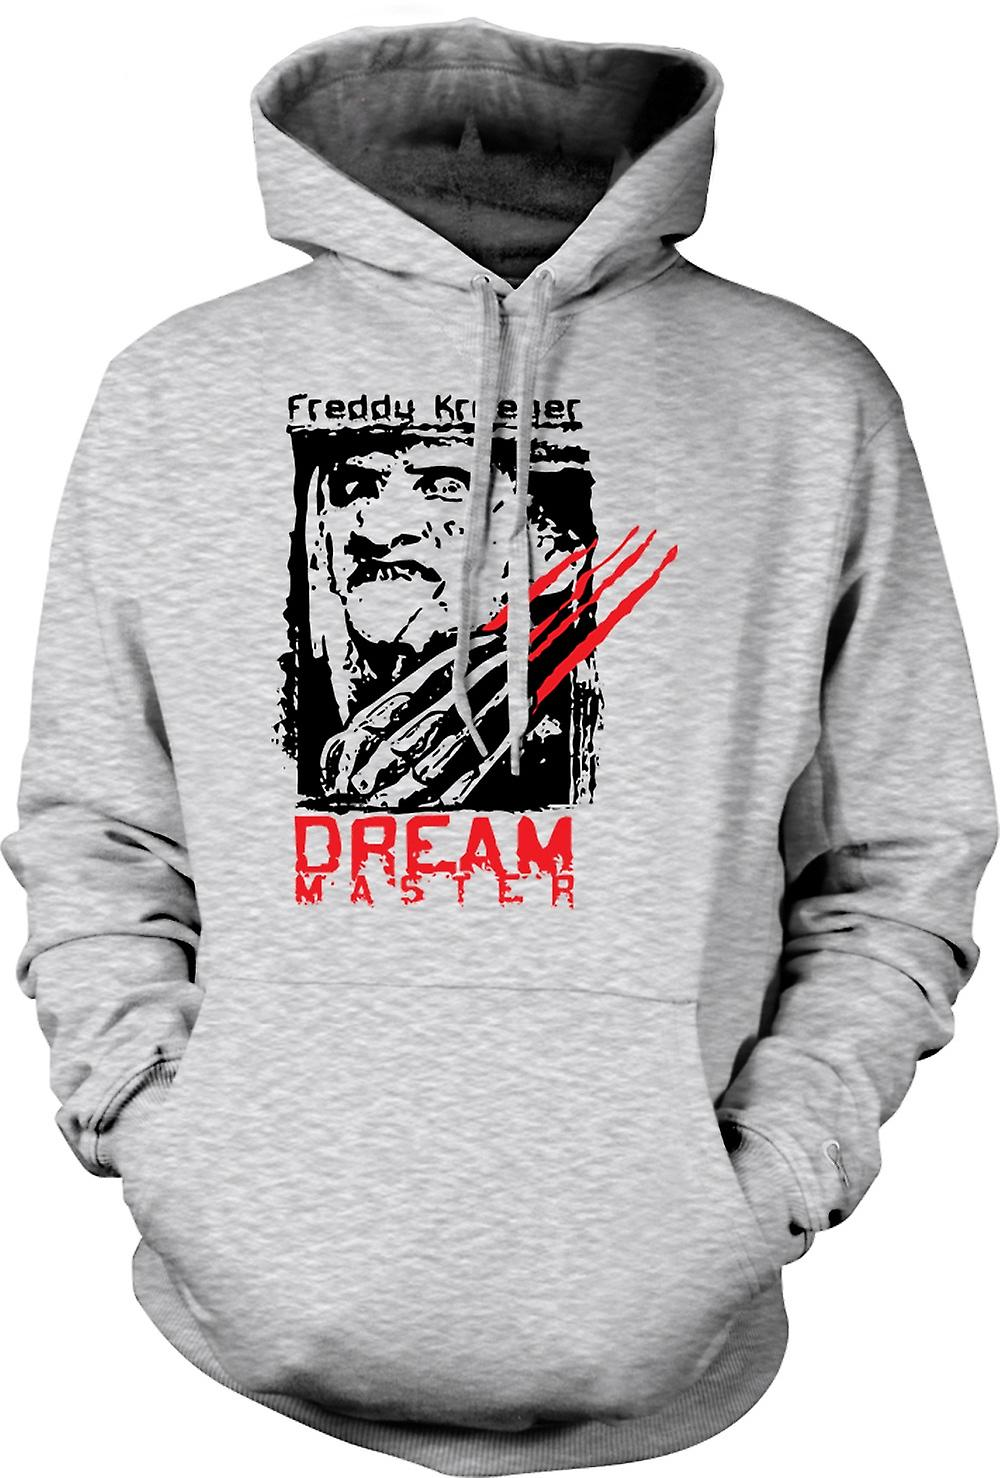 Mens Hoodie - Freddy Krueger Dream Master - Horror